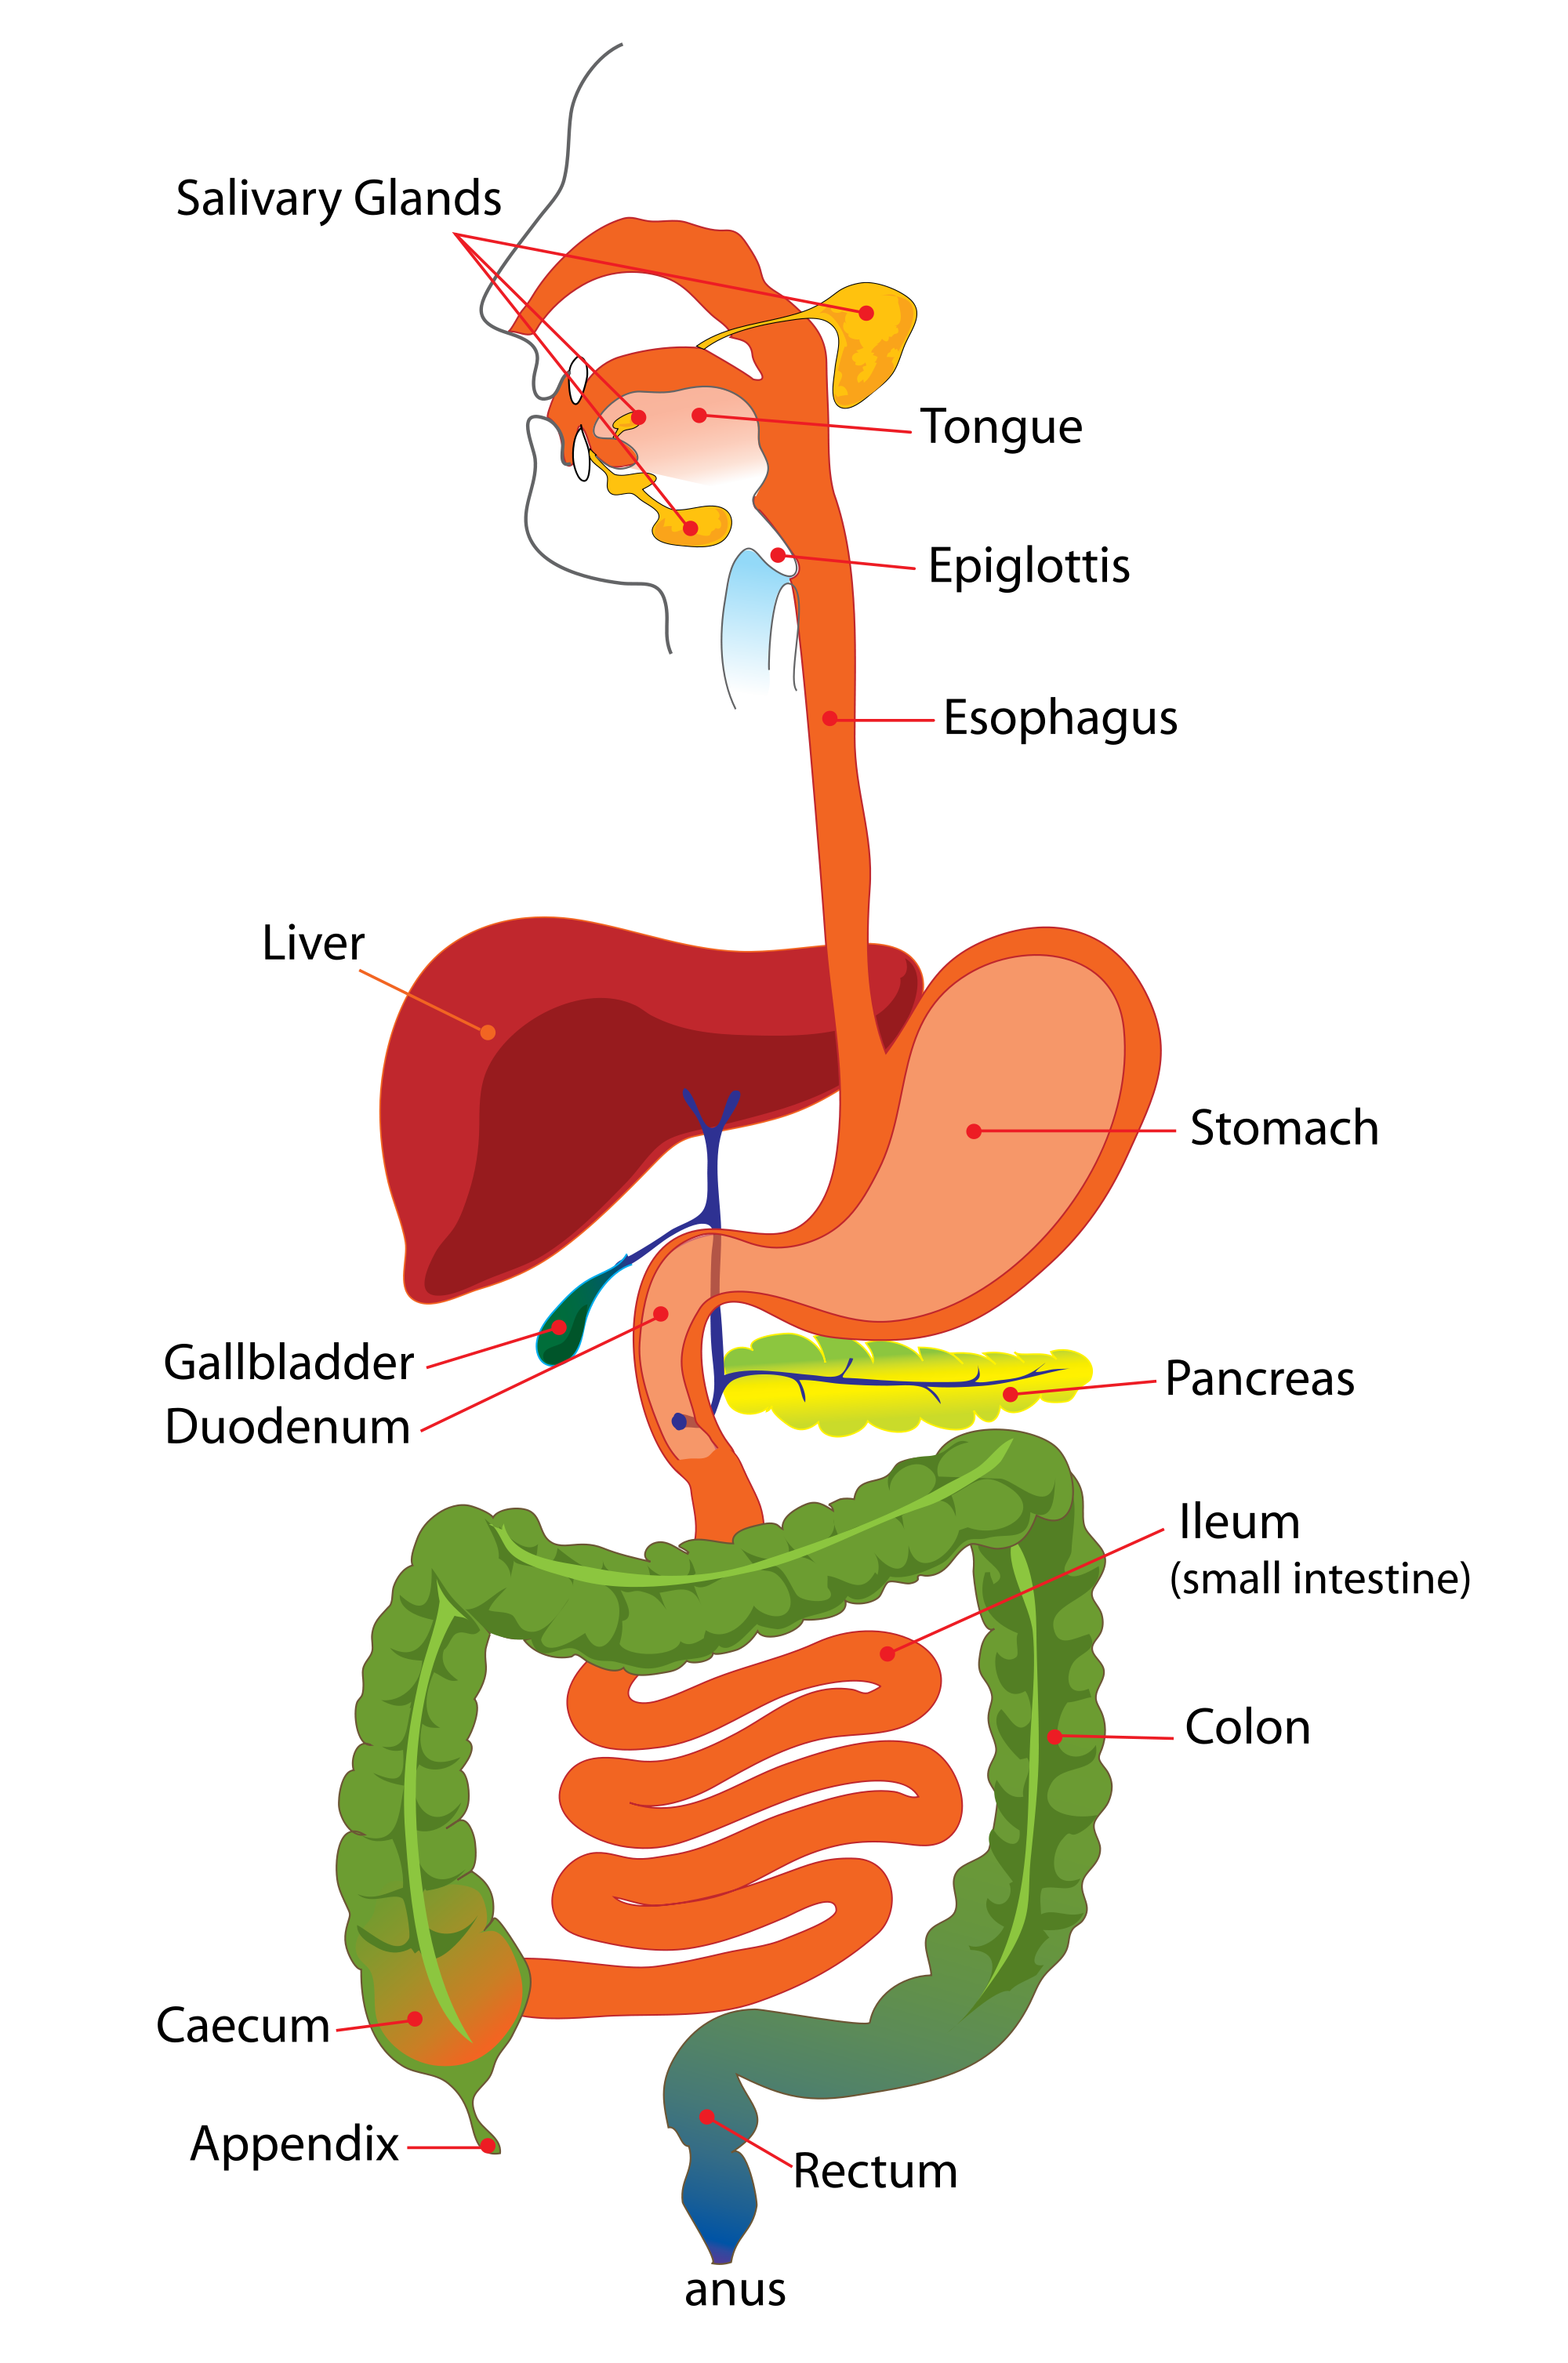 Digestive System Diagram for Kids & Digestion Facts - InfoBarrel ...